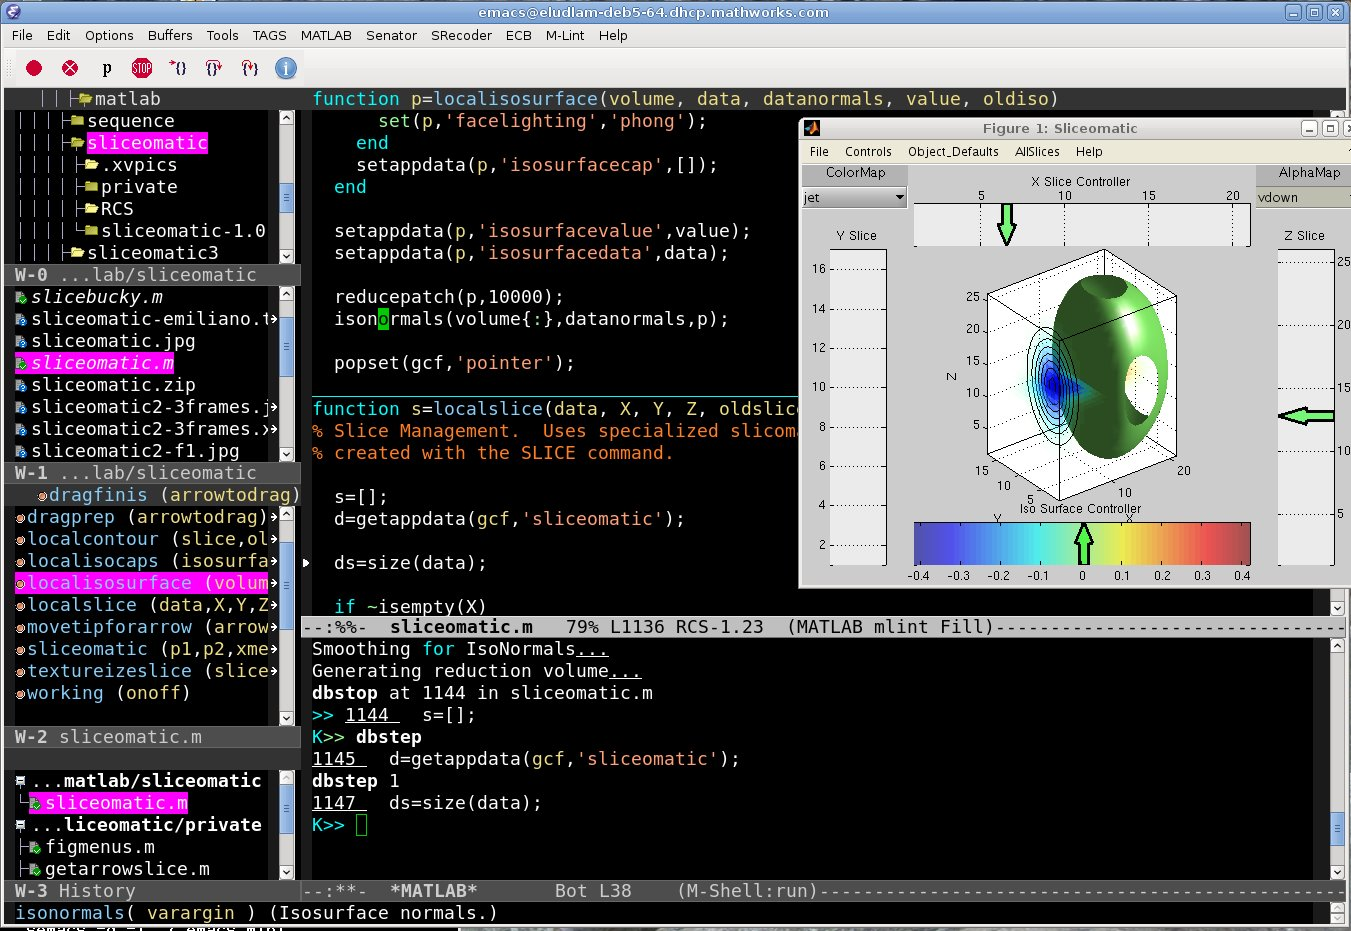 MATLAB-Emacs integration is back » MATLAB Community - MATLAB & Simulink